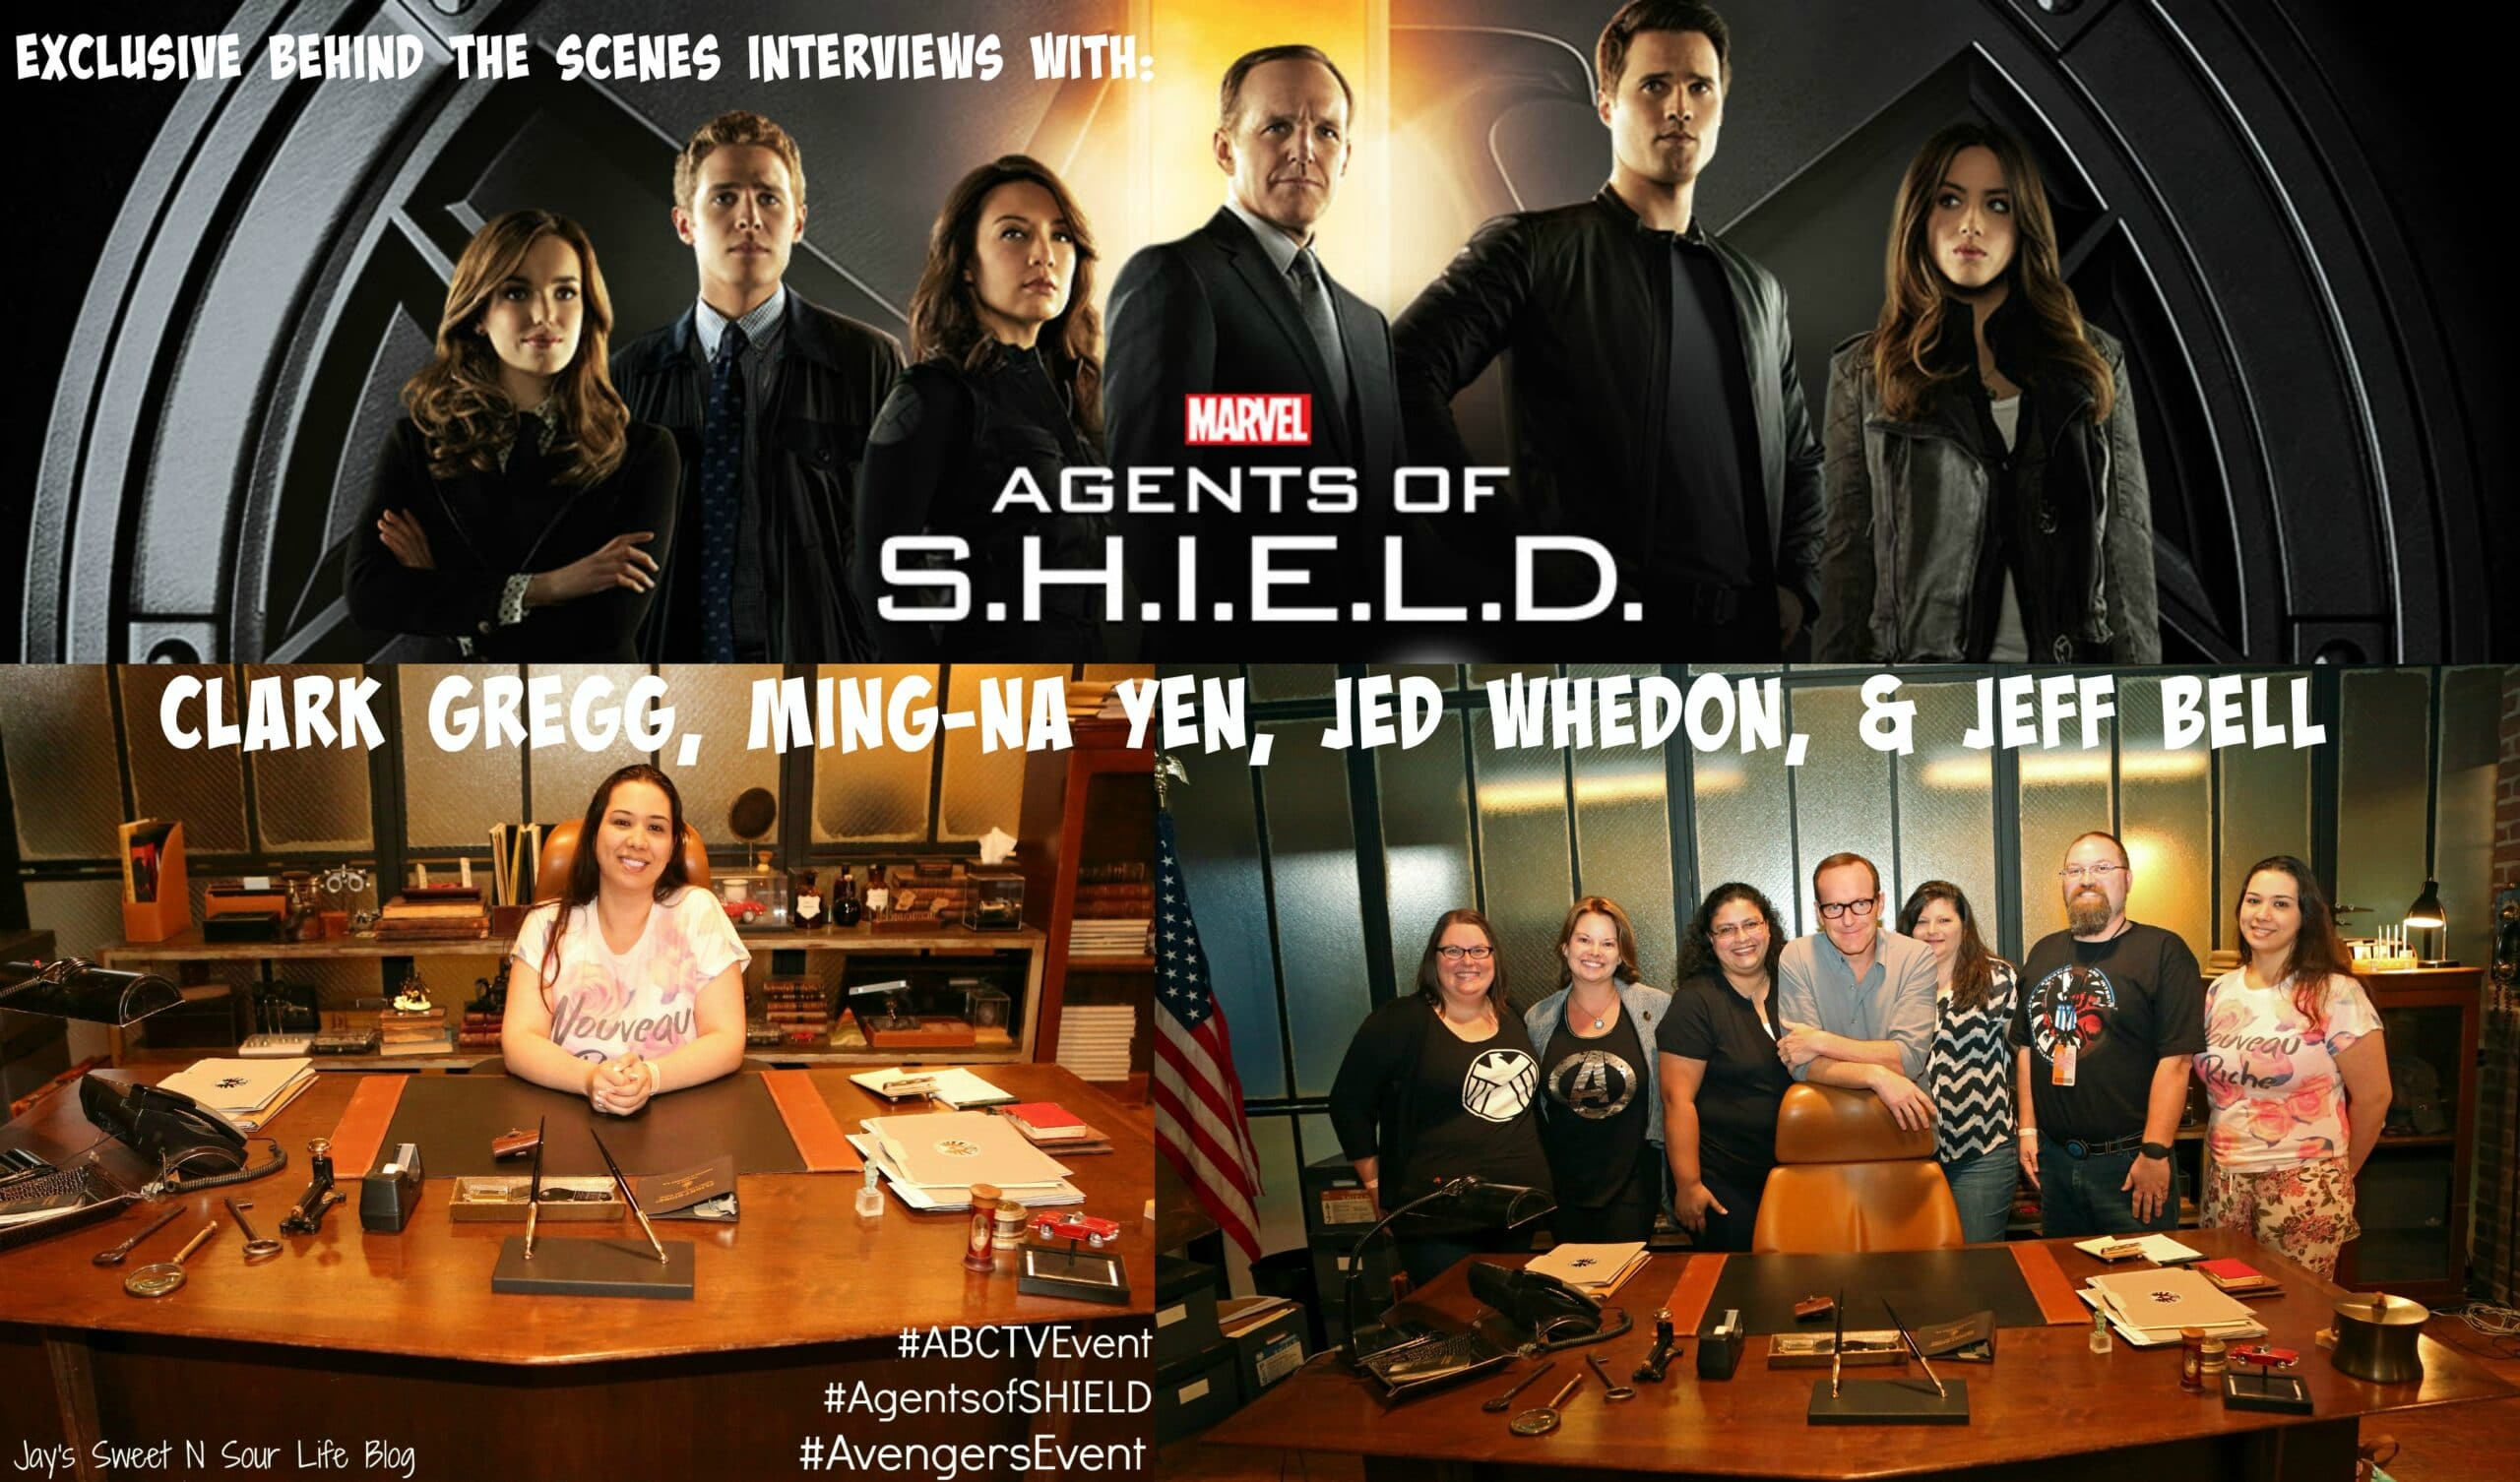 Exclusive Behind The Scenes Interviews With Marvel's Agents of S.H.I.E.L.D with Clark Gregg, Ming-Na Yen, Jed Whedon, & Jeff Bell ~ #ABCTVEvent #AgentsofSHIELD